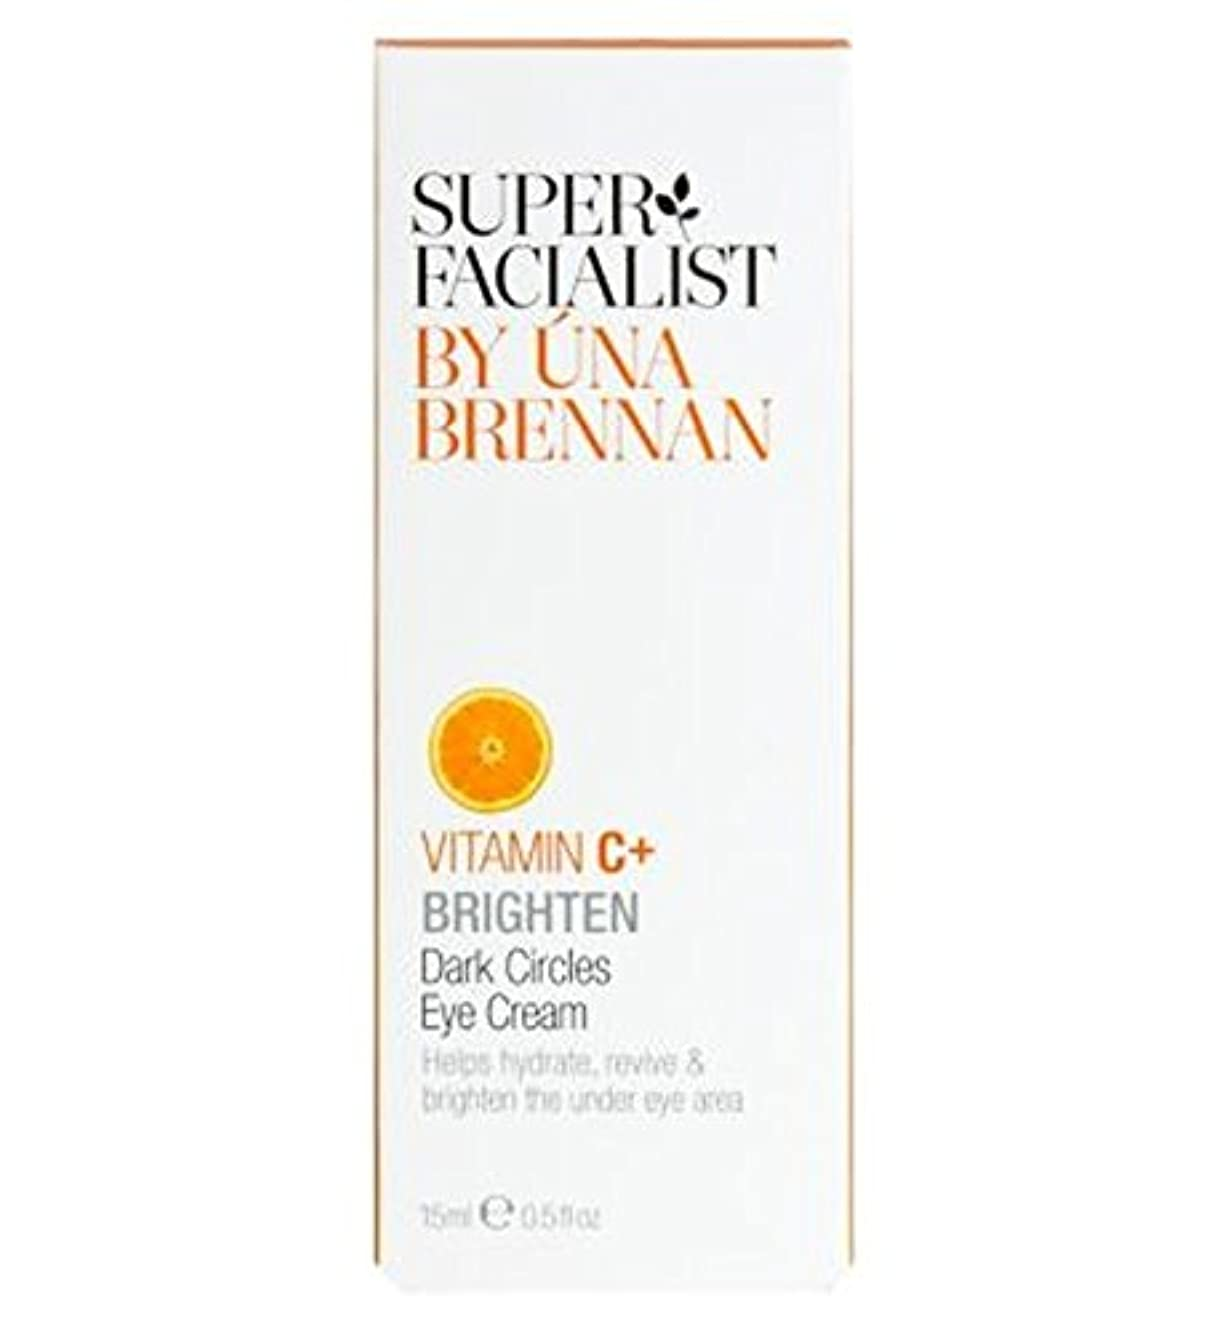 現象満員テーブルSuperfacialistビタミンC +くまアイクリーム15ミリリットル (Superfacialist) (x2) - Superfacialist Vitamin C+ Dark Circles Eye Cream...